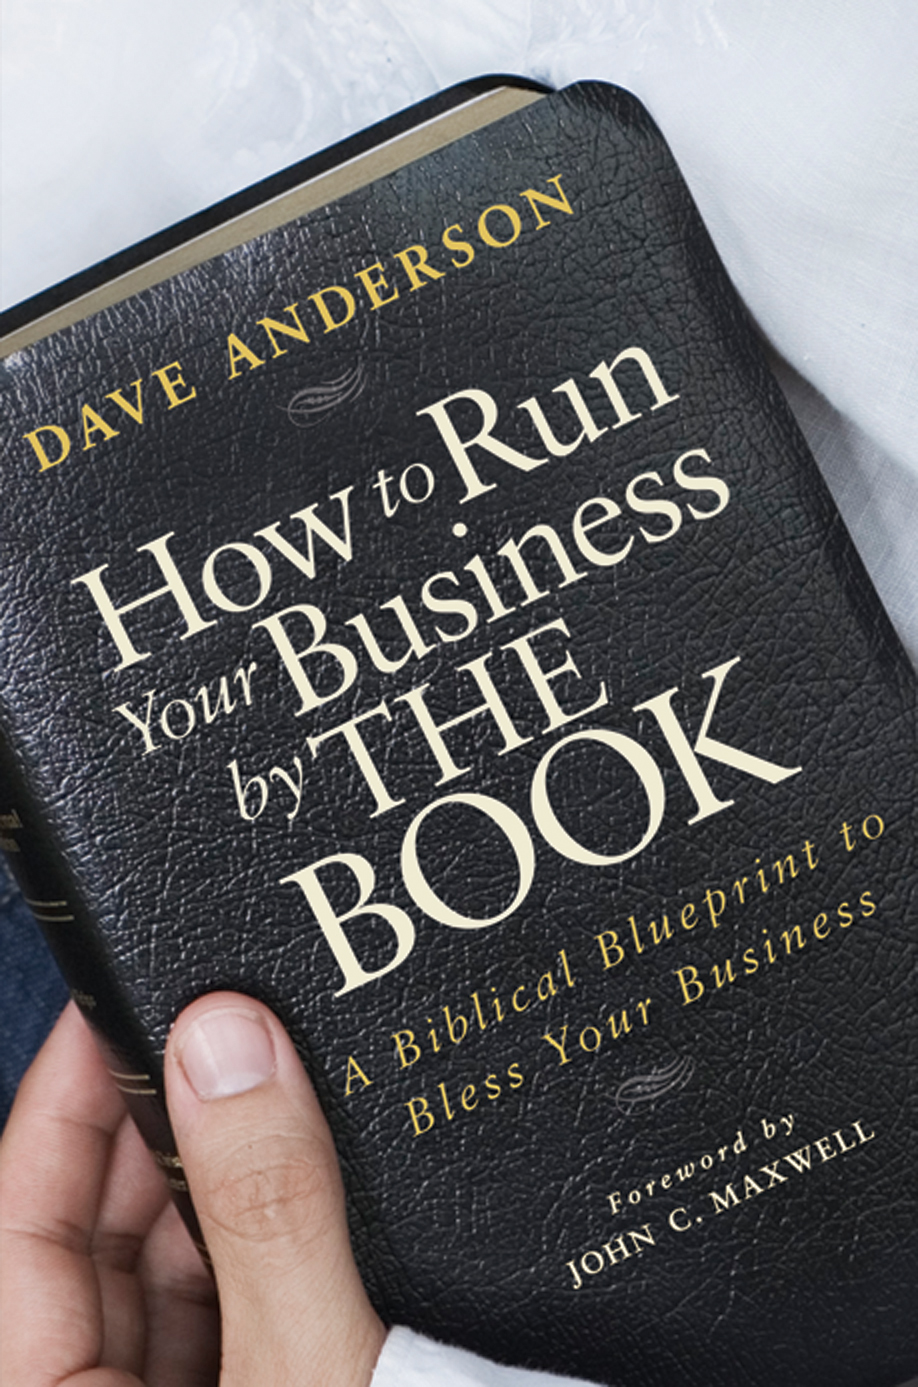 Dave Anderson How to Run Your Business by The Book. A Biblical Blueprint to Bless Your Business business and ethics in a country with political socio economic crisis